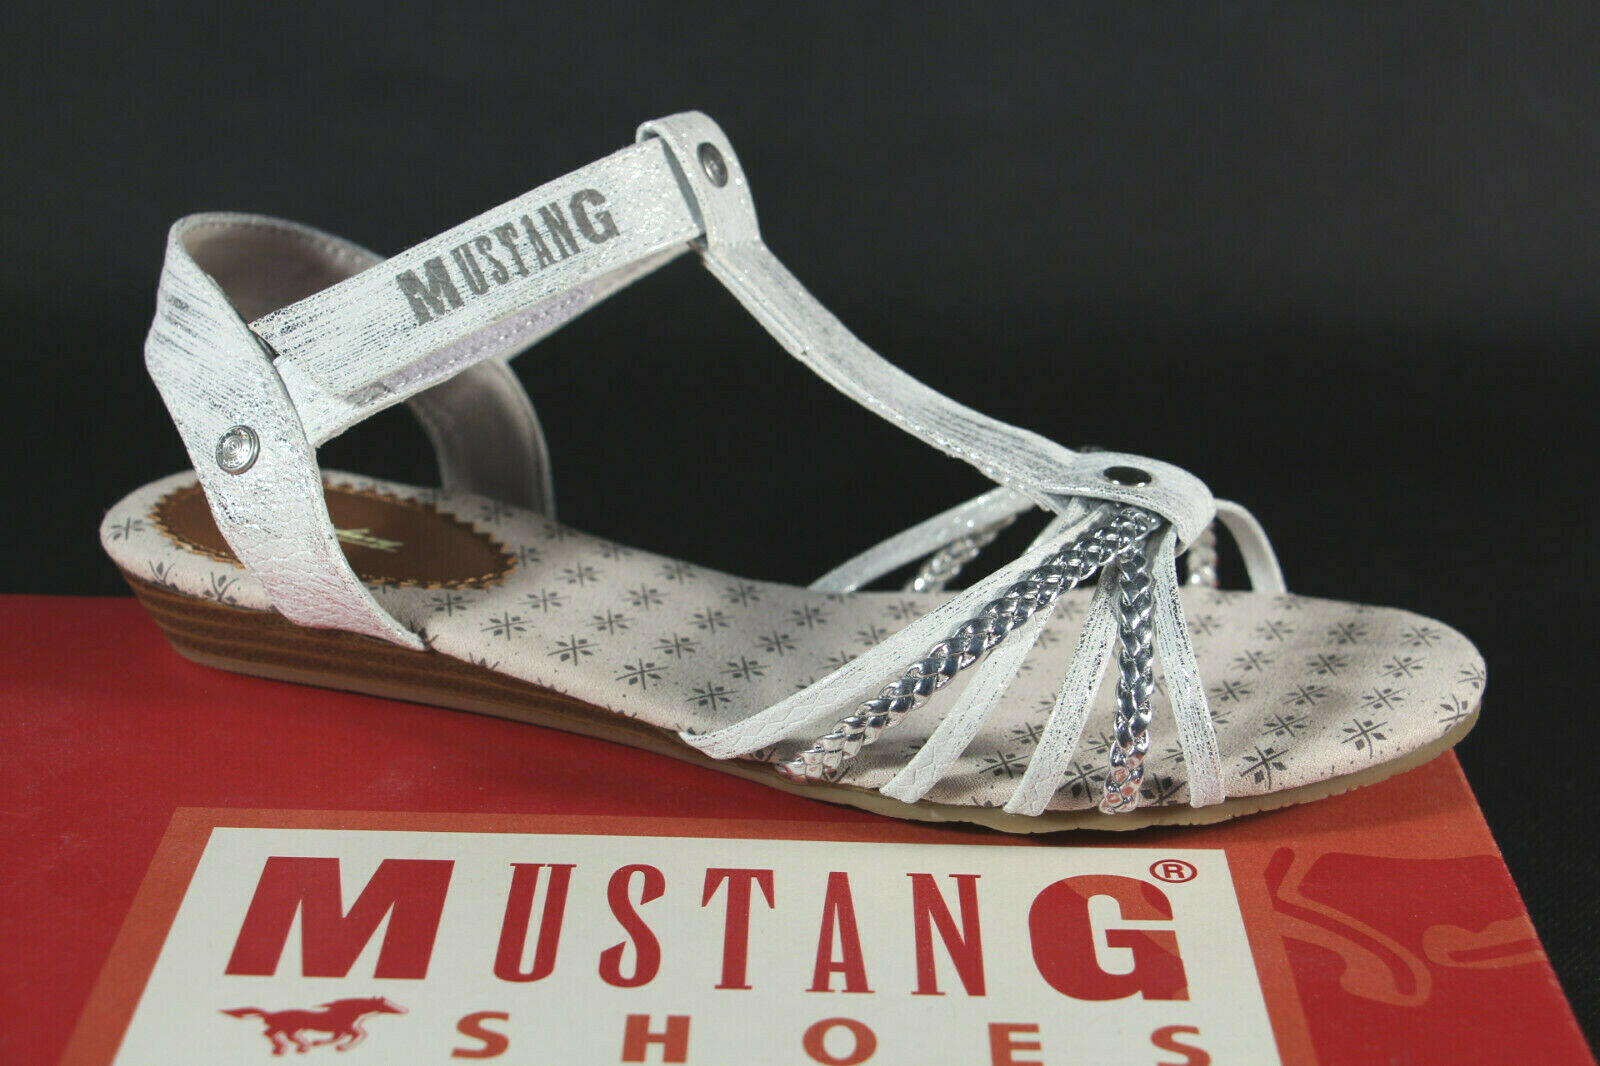 Mustang girls sandal sandals closed sticker silver 5029-812 new